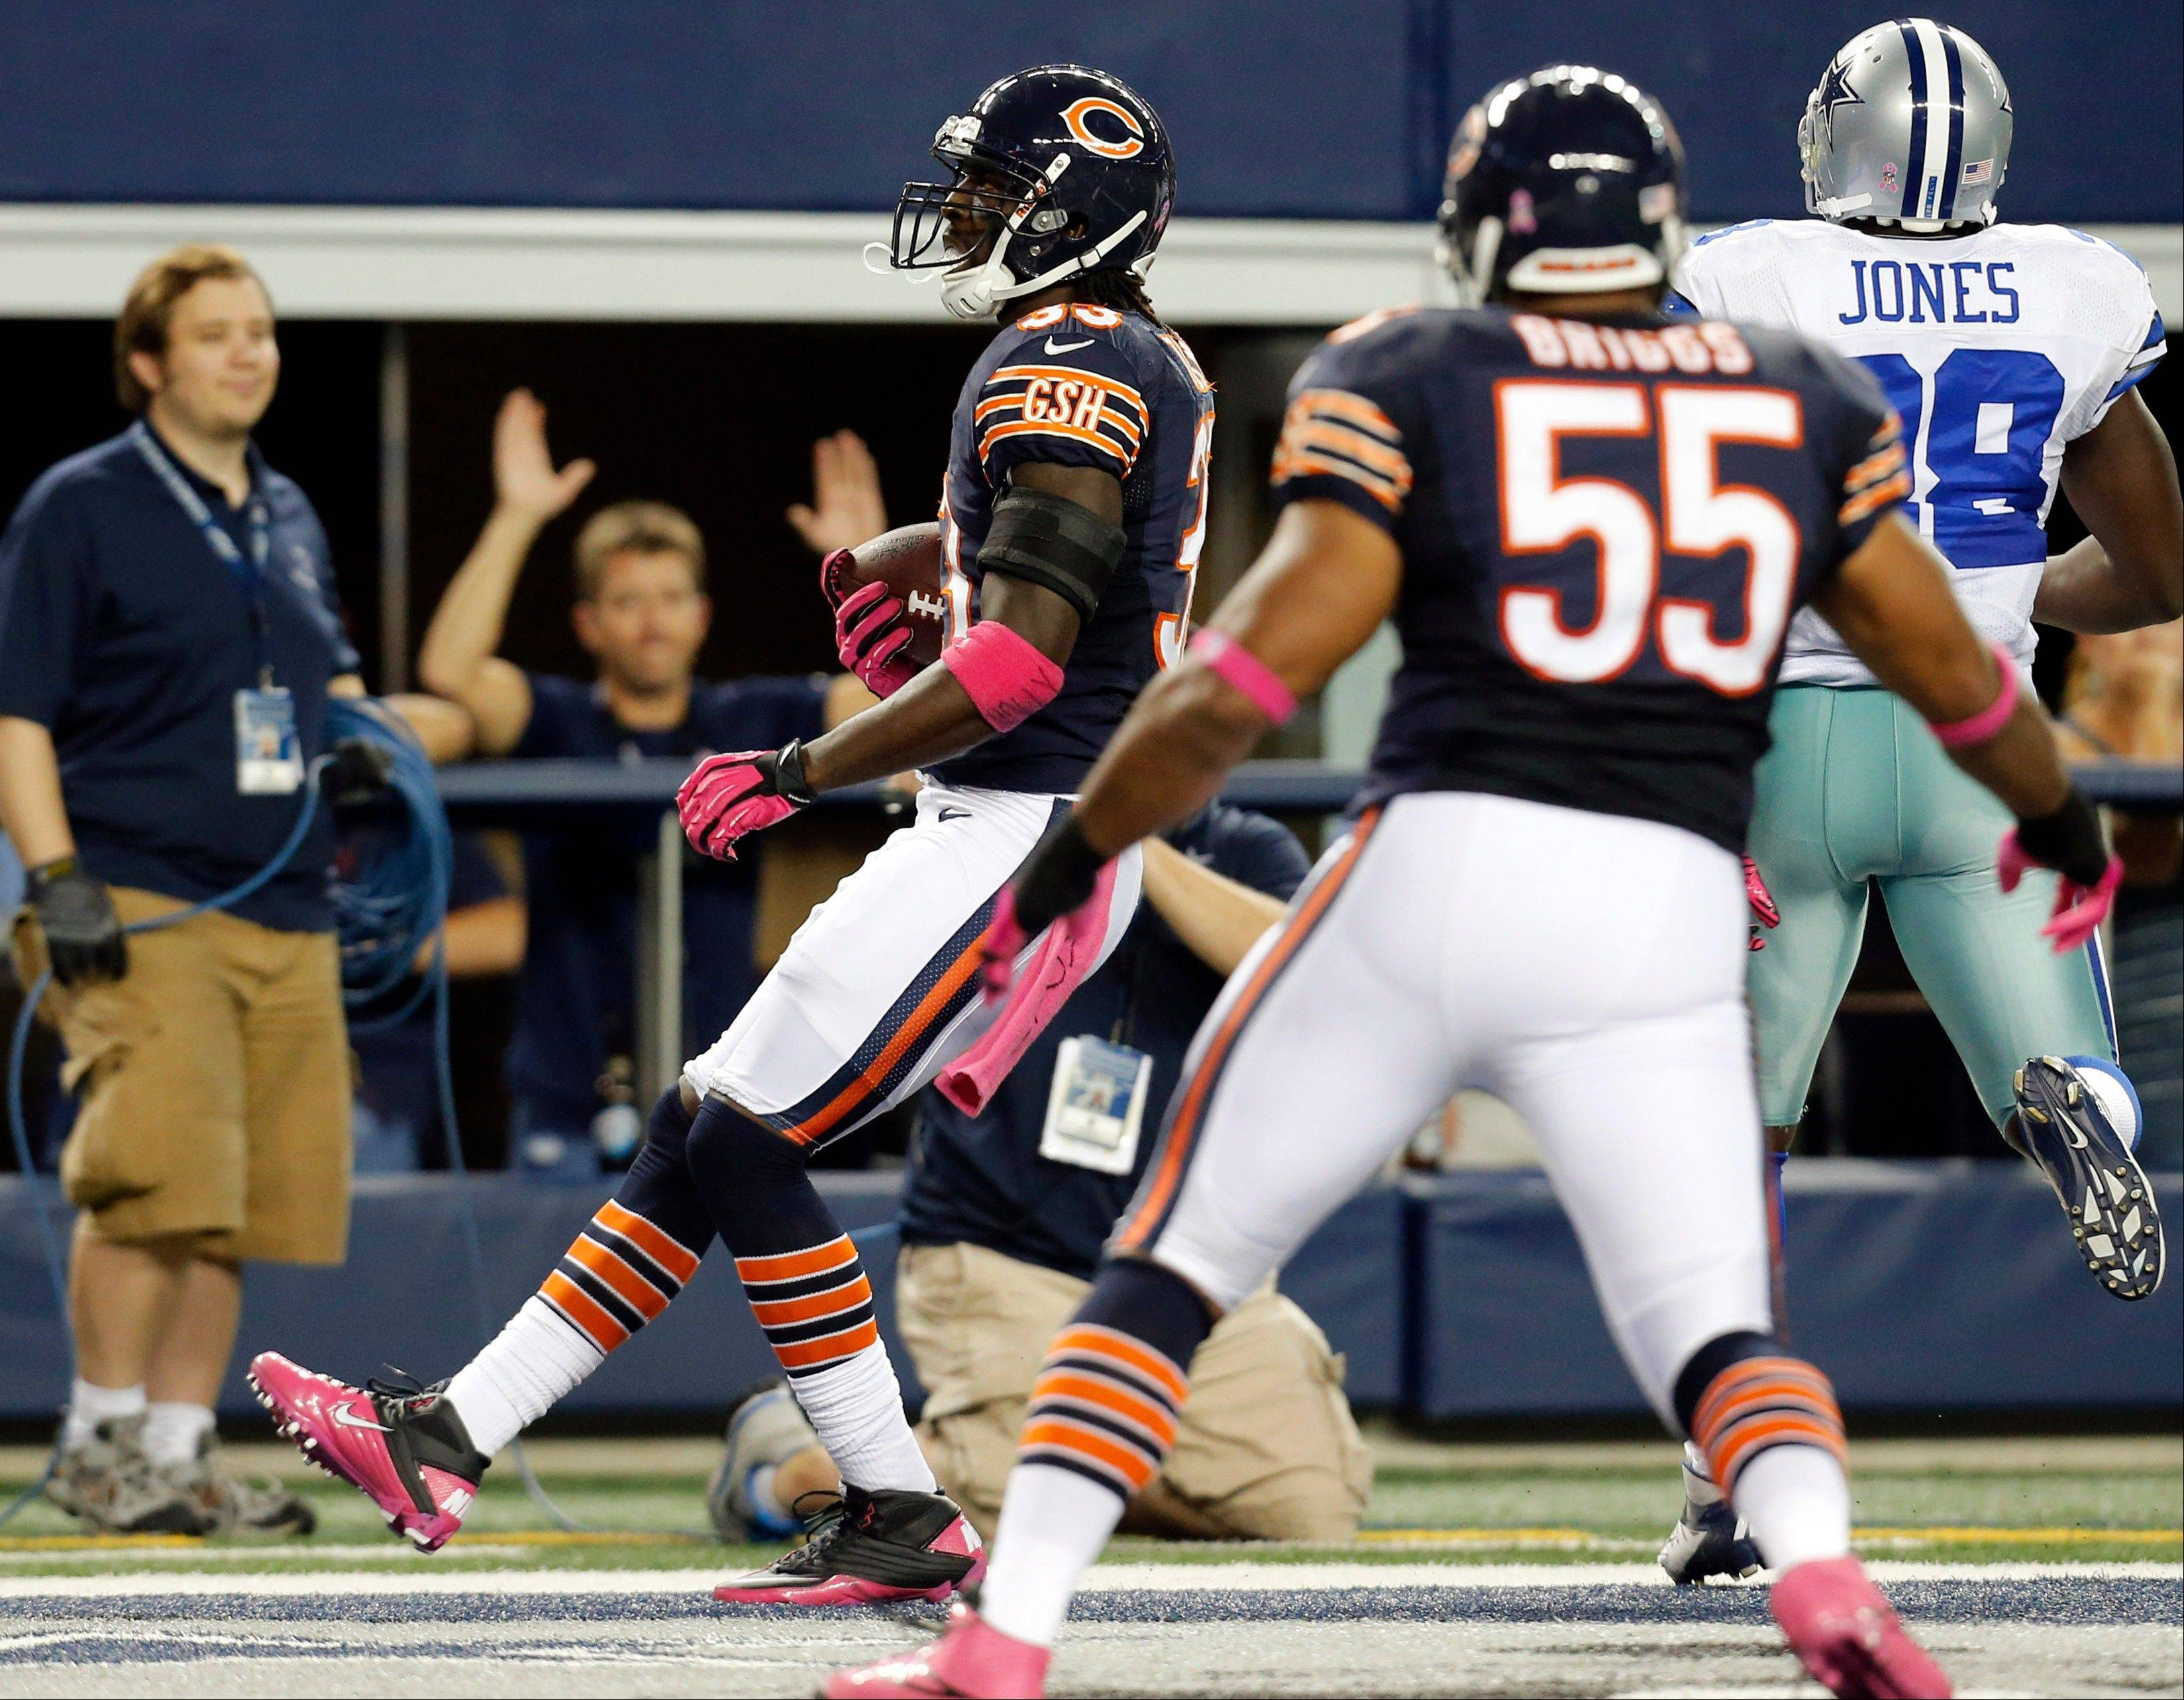 Chicago Bears cornerback Charles Tillman returns an interception for a touchdown past Dallas Cowboys running back Felix Jones as Bears' Lance Briggs watches during the first half.